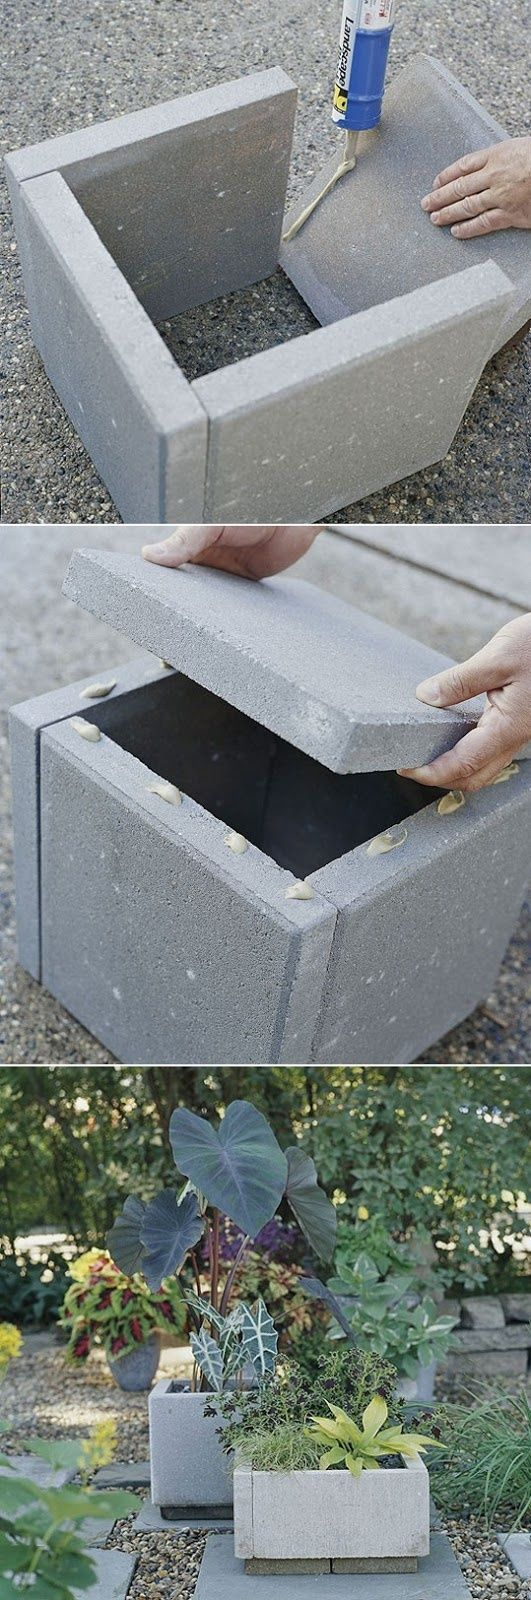 Landscaping Block Glue : Step diy paver planter planters concrete and